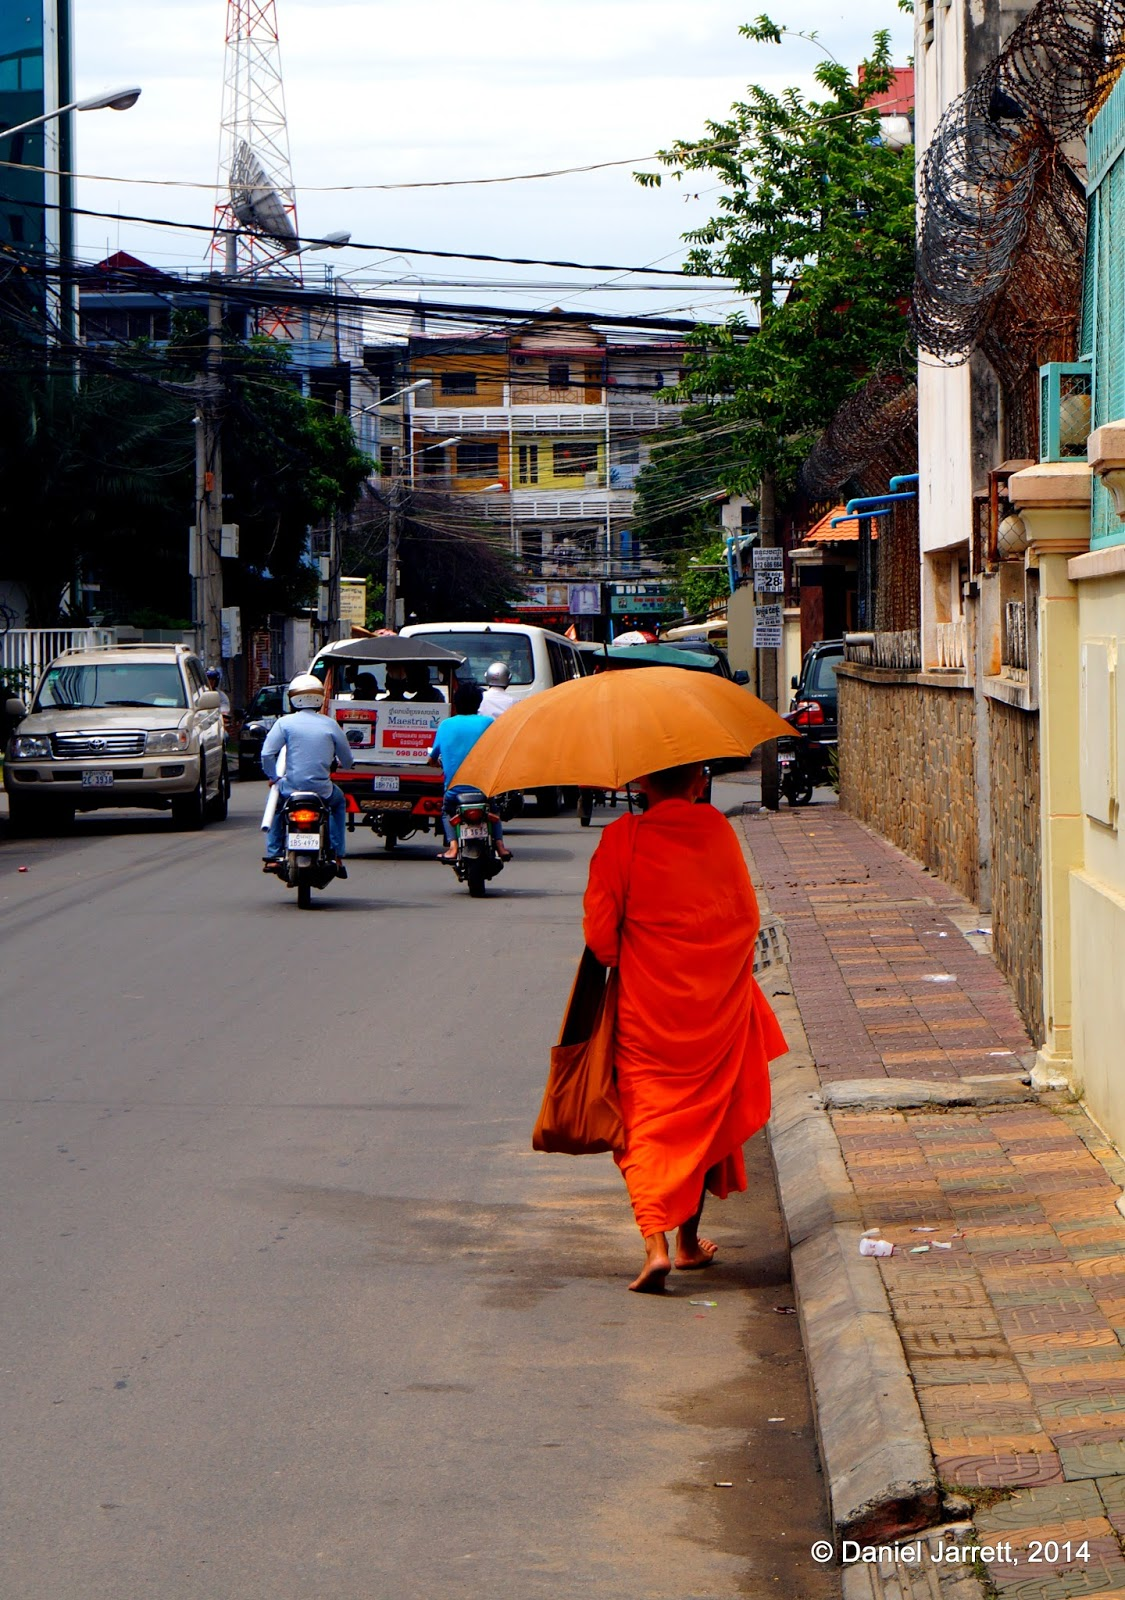 Monk on morning alms, Phnom Penh, Cambodia